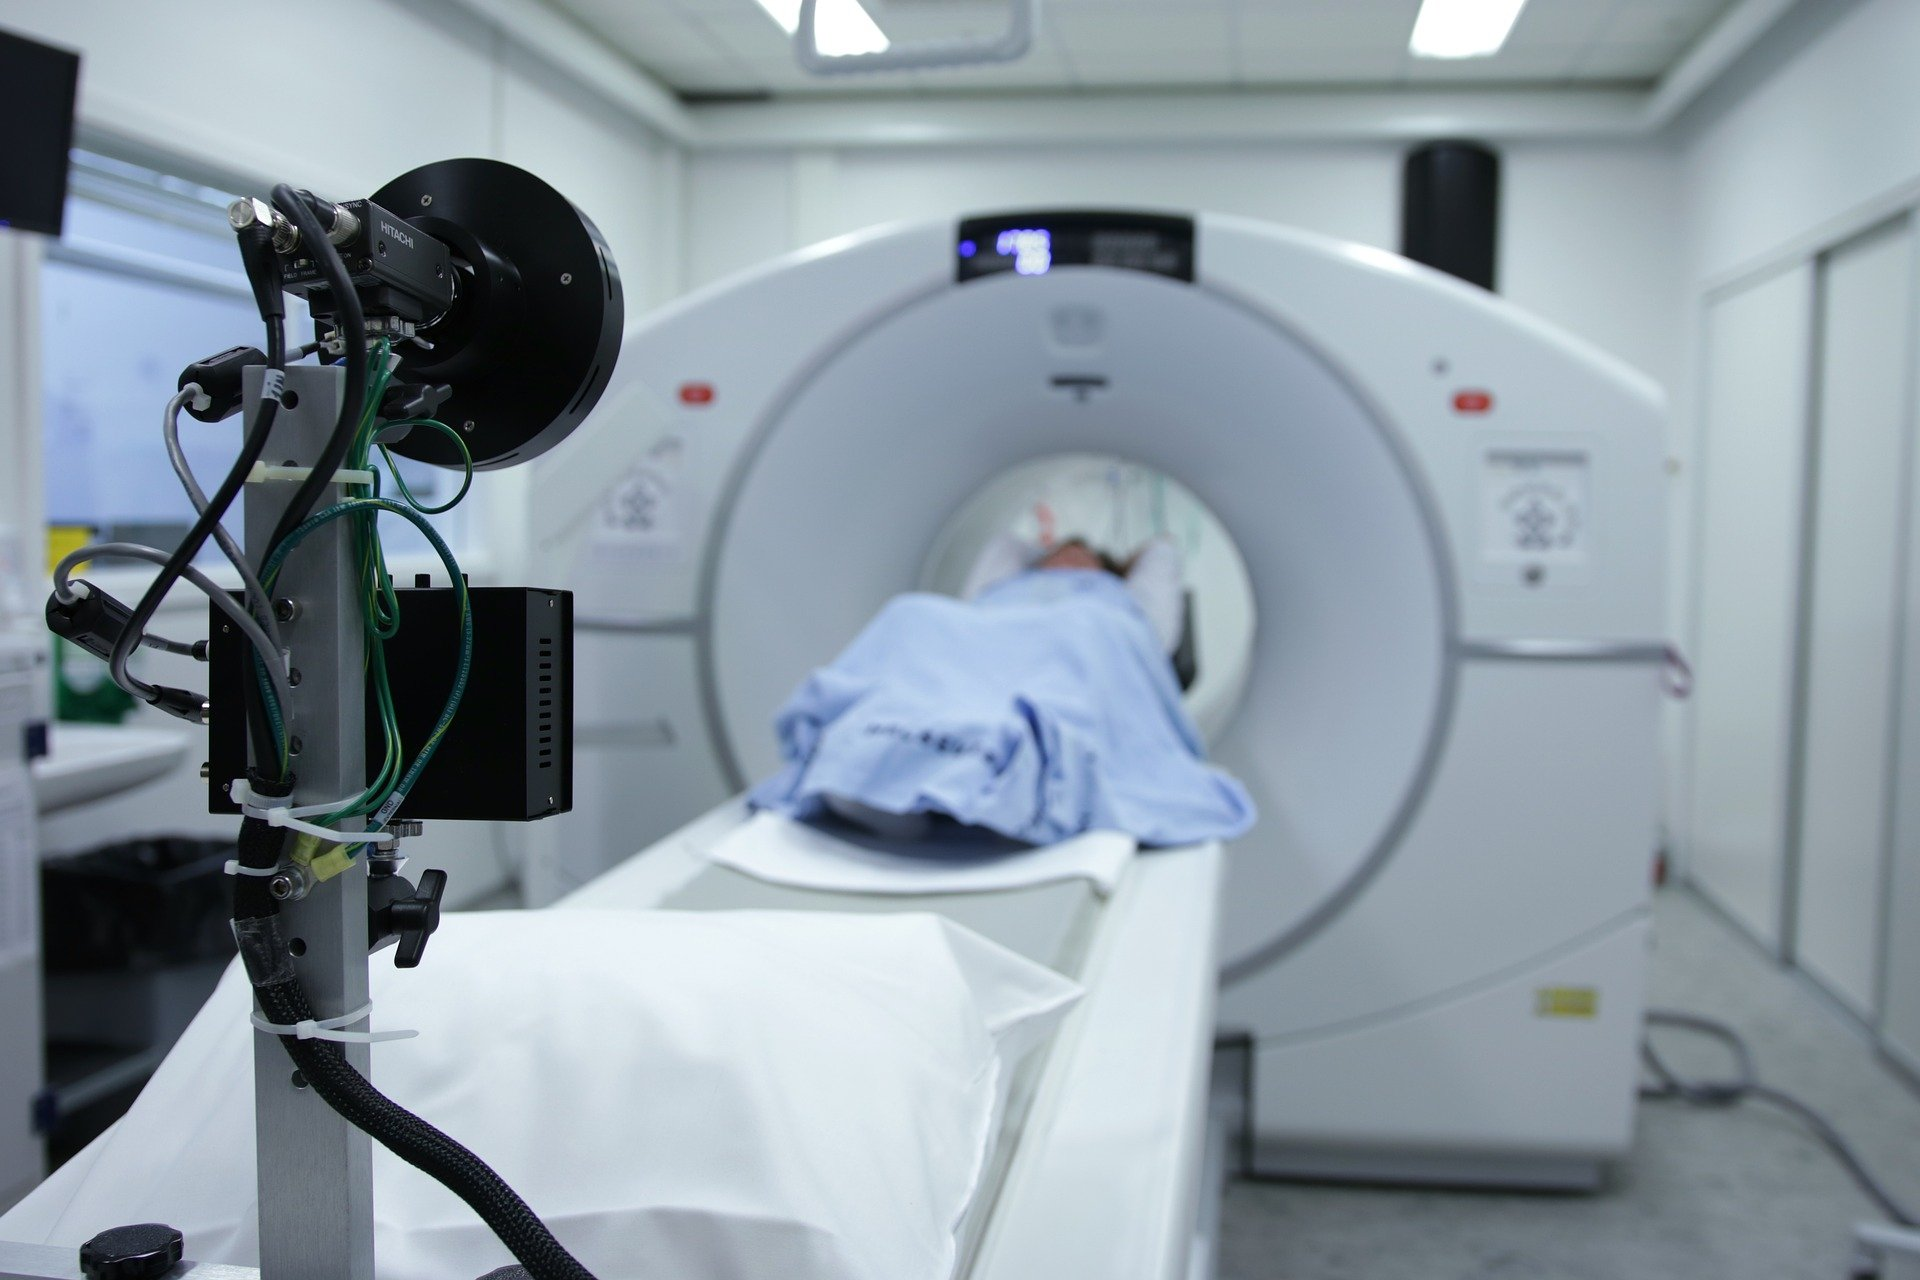 CT scanning machine (credit: Bokskapet, Pixabay)